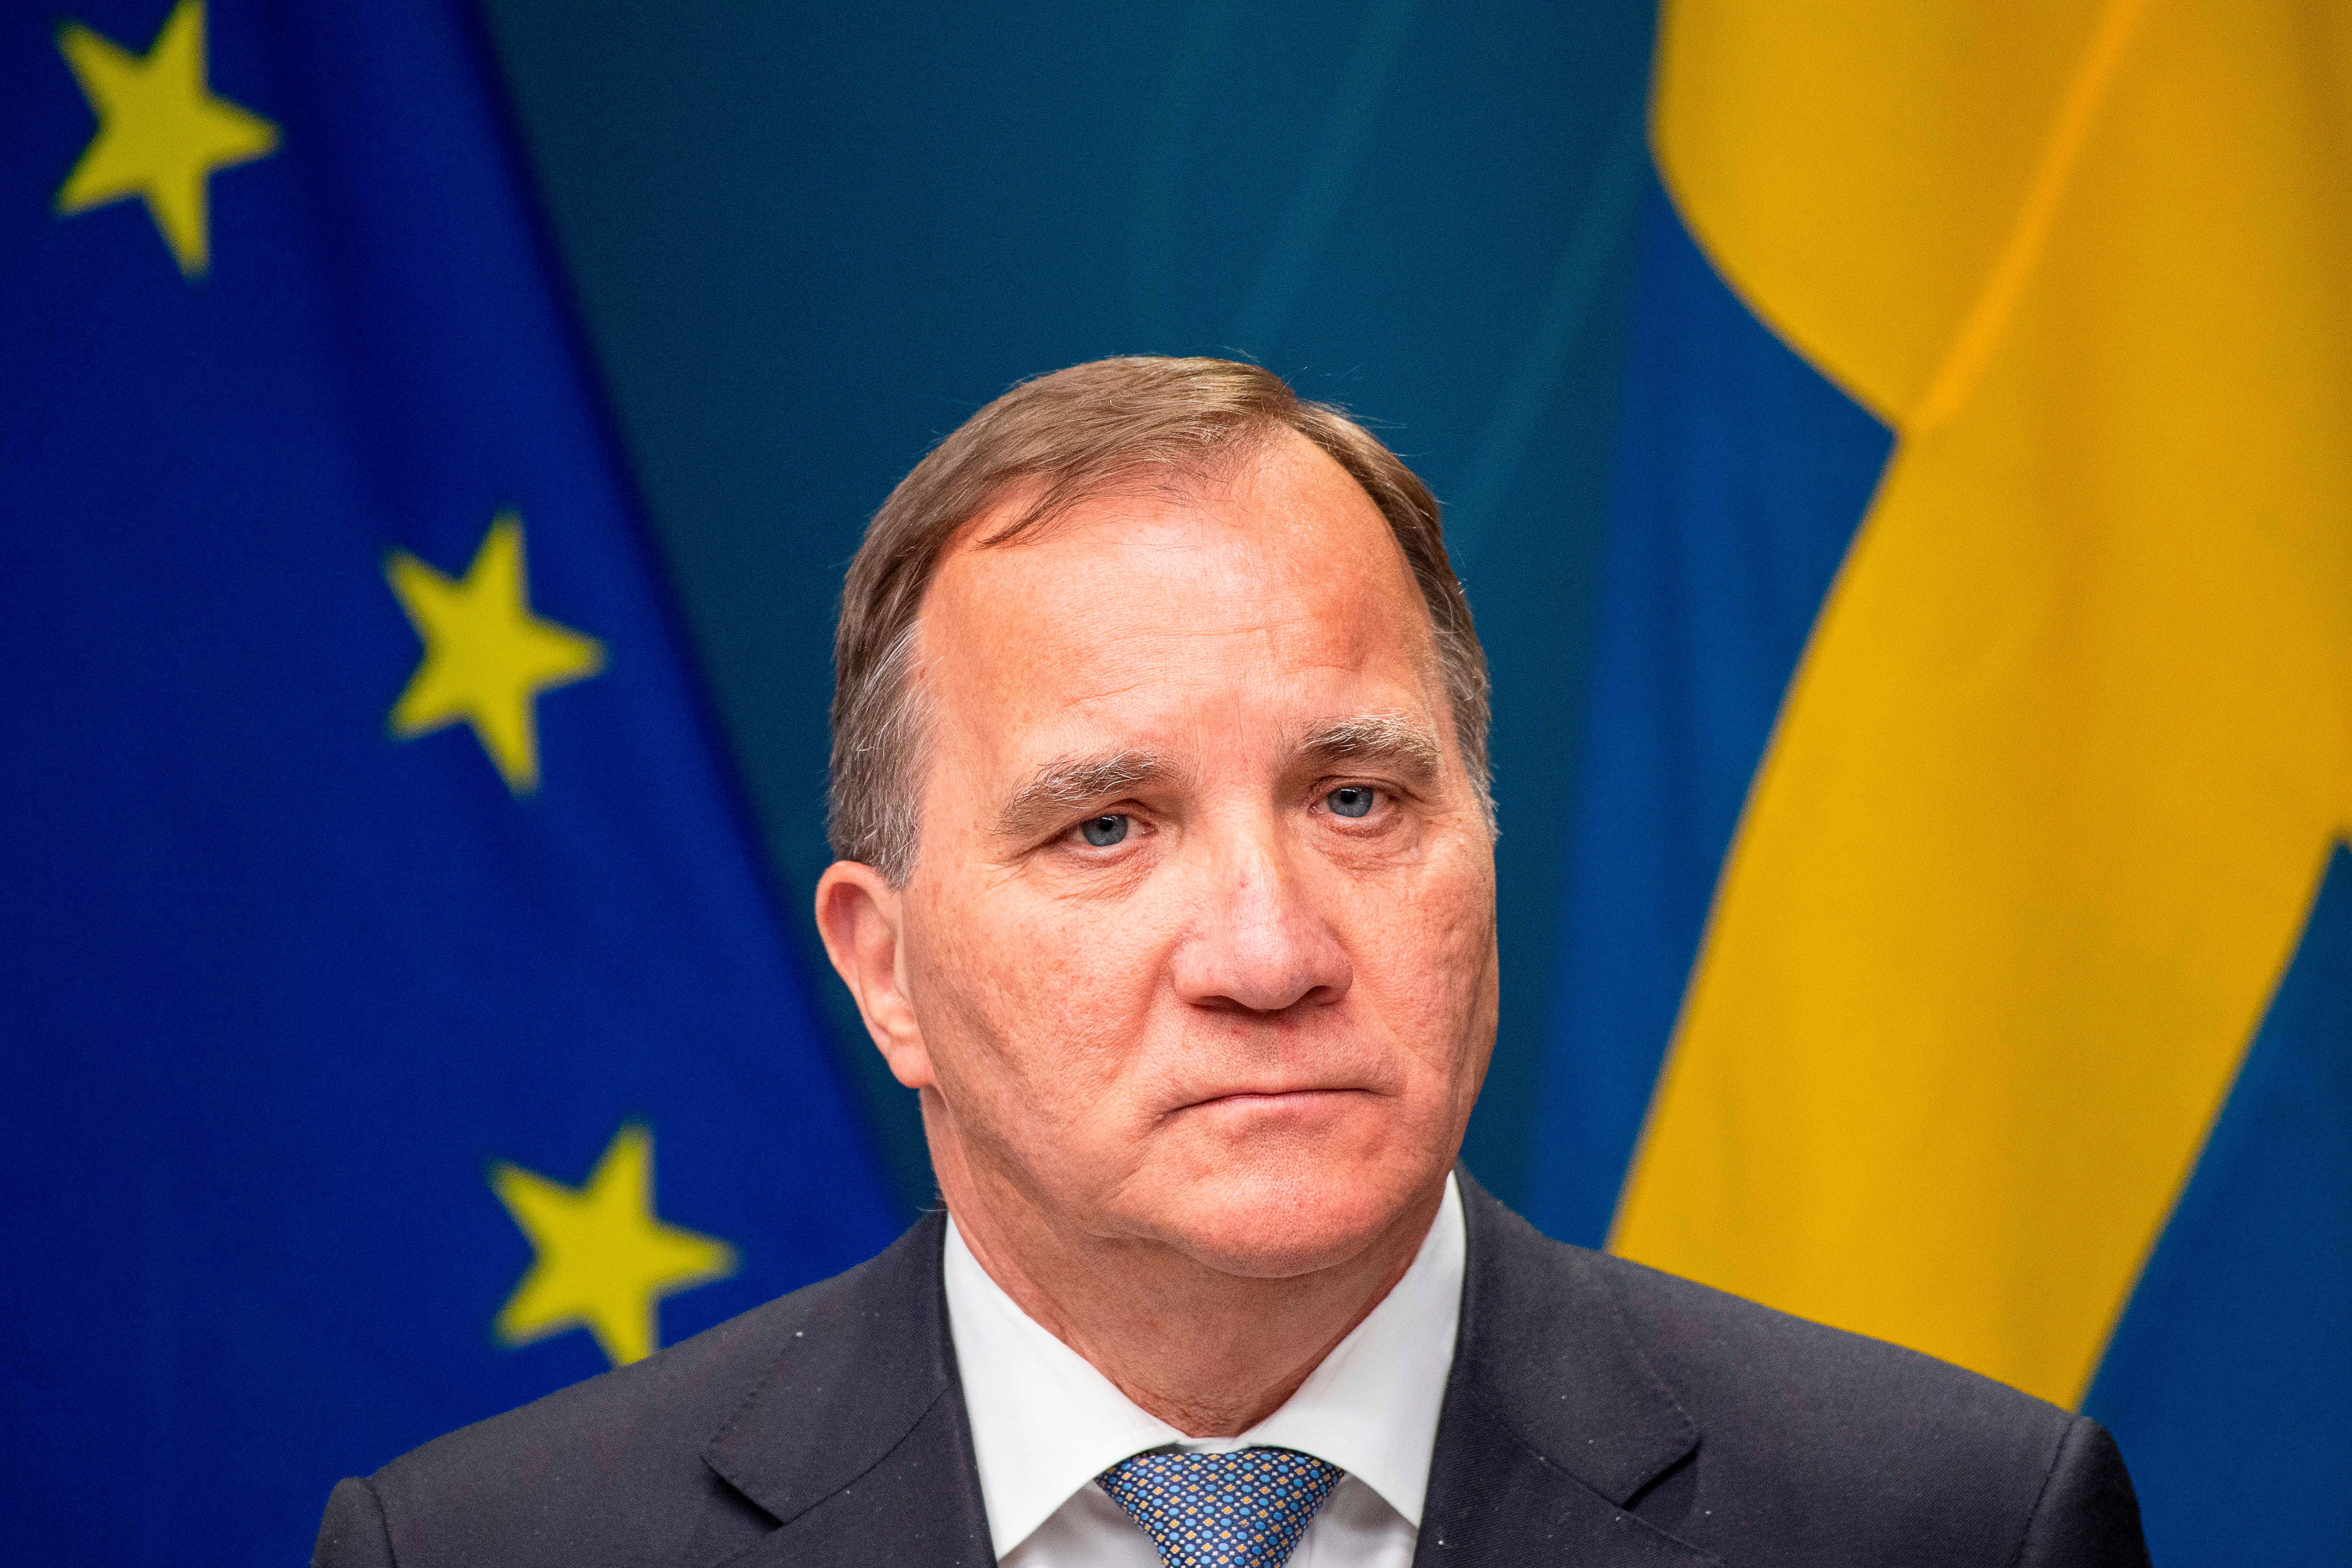 Swedish Prime Minister Stefan Löfven holds a press conference in Stockholm on May 29.